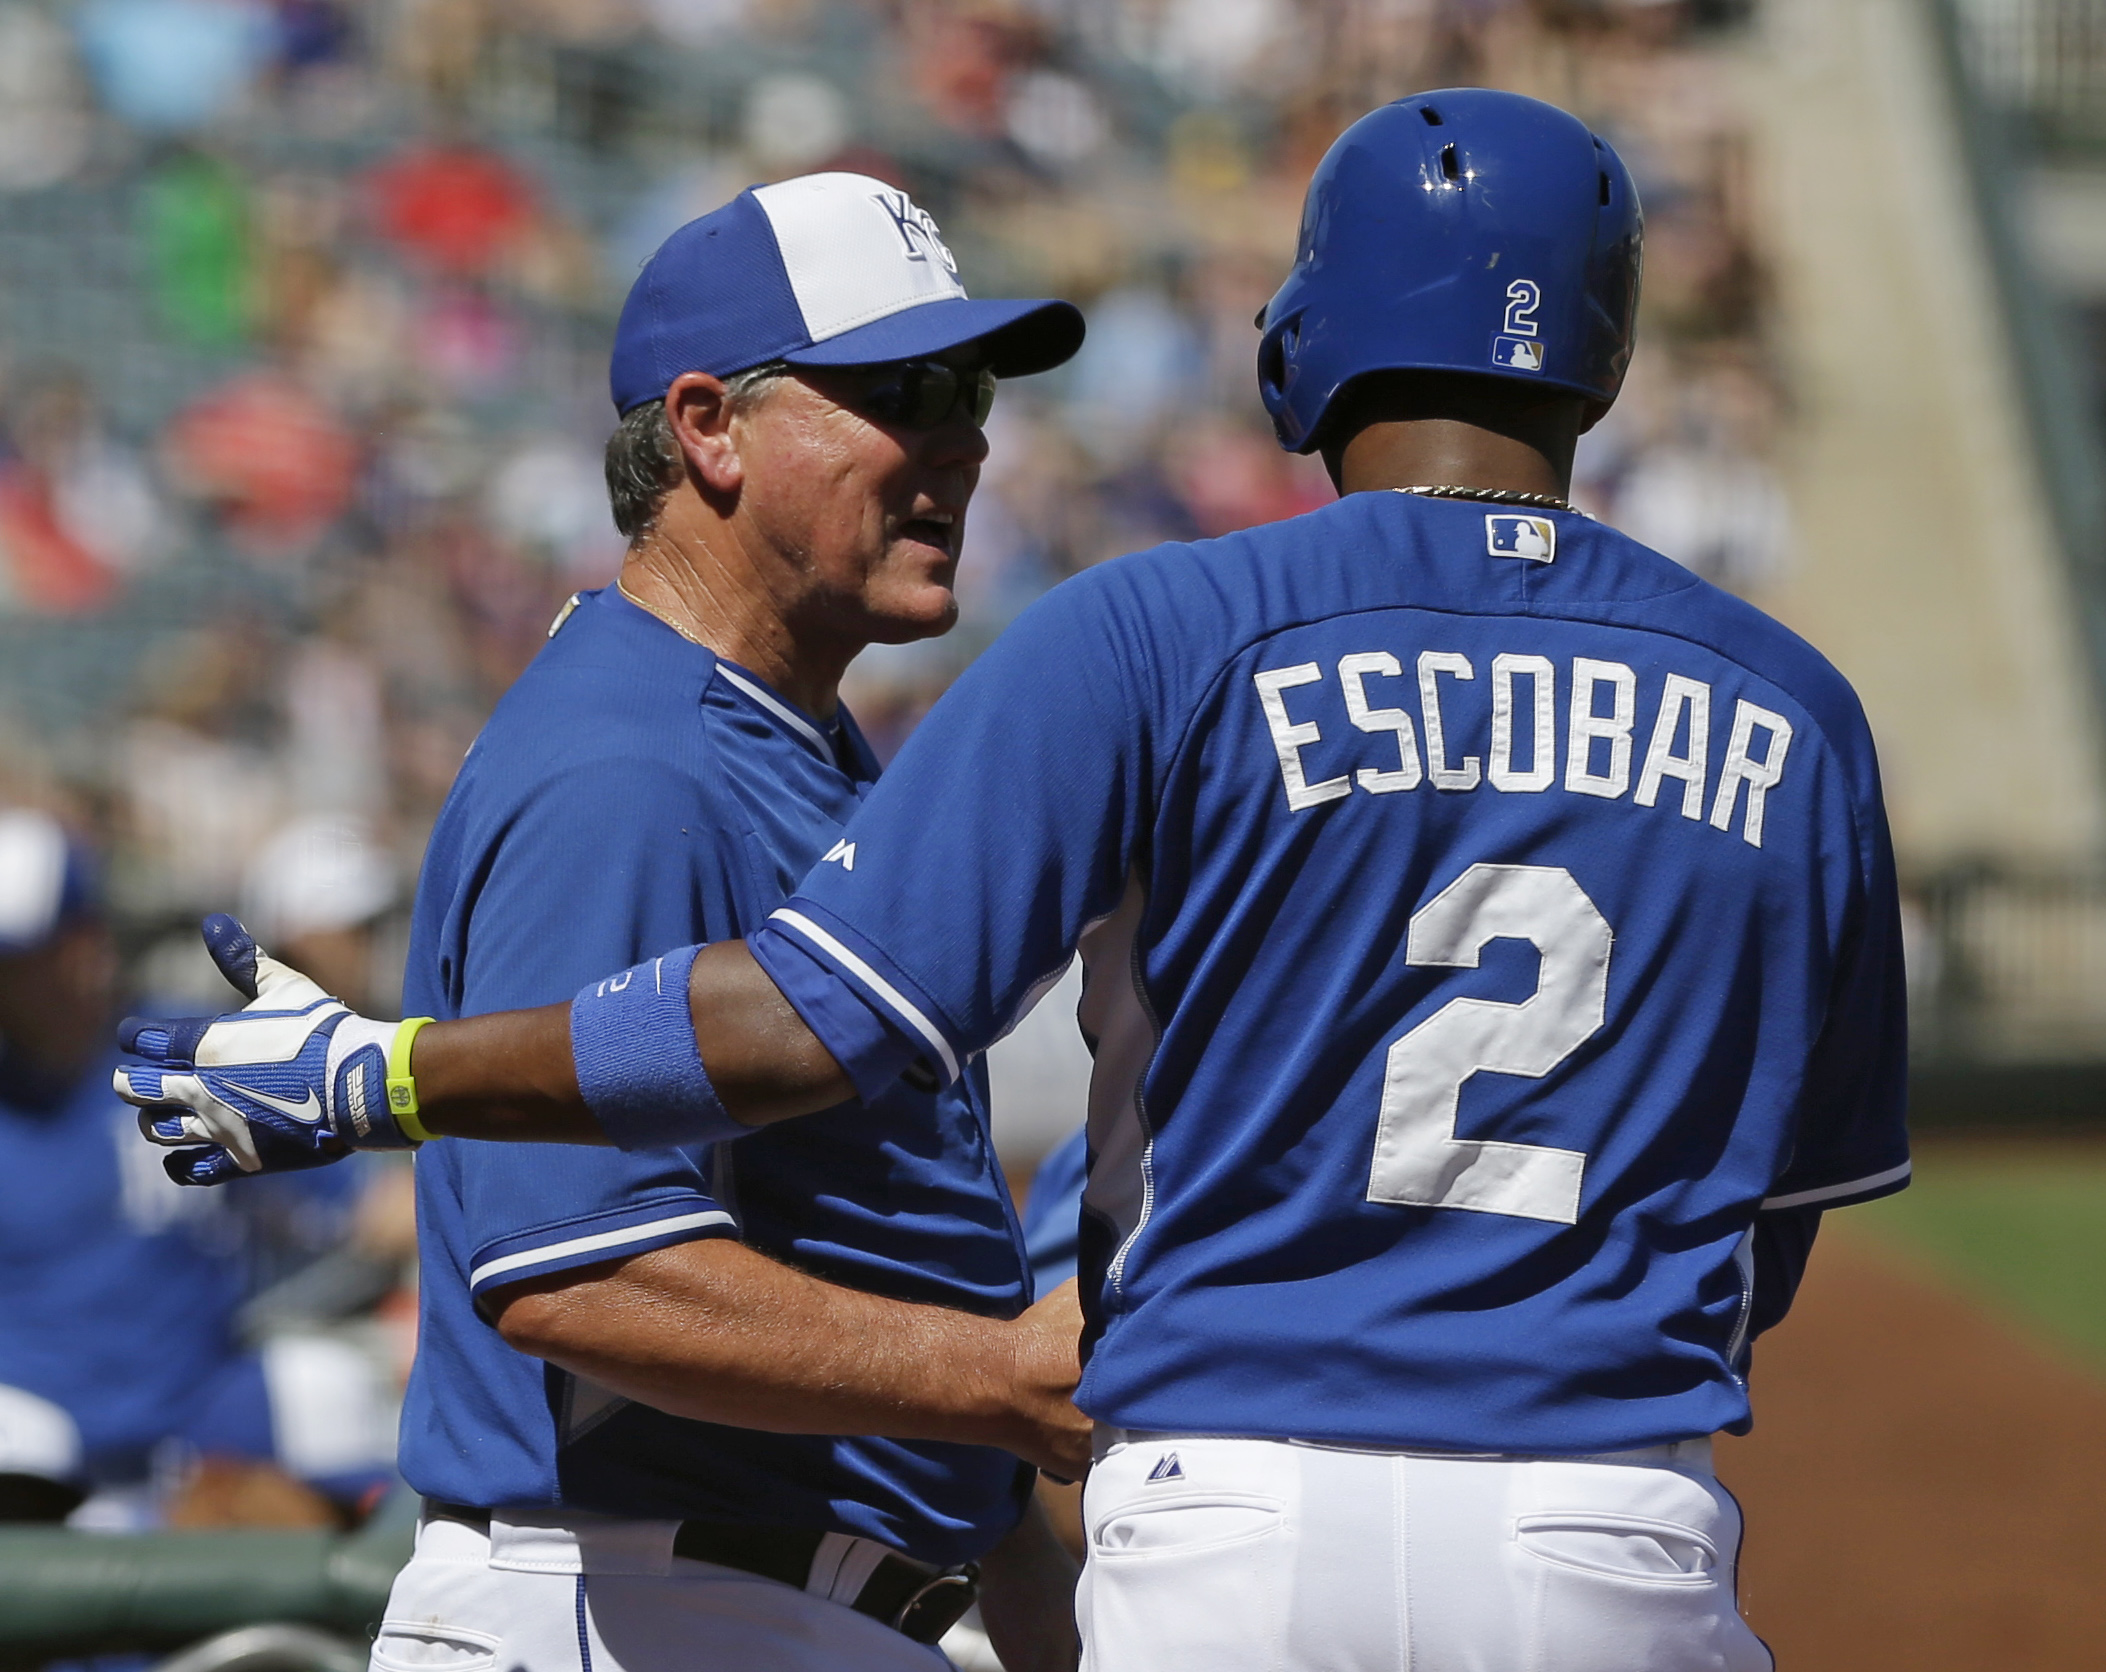 Kansas City Royals manager Ned Yost greets Alcides Escobar after he scored during the second inning of a spring exhibition baseball game against the Texas Rangers, Saturday, March 22, 2014, in Surprise, Ariz